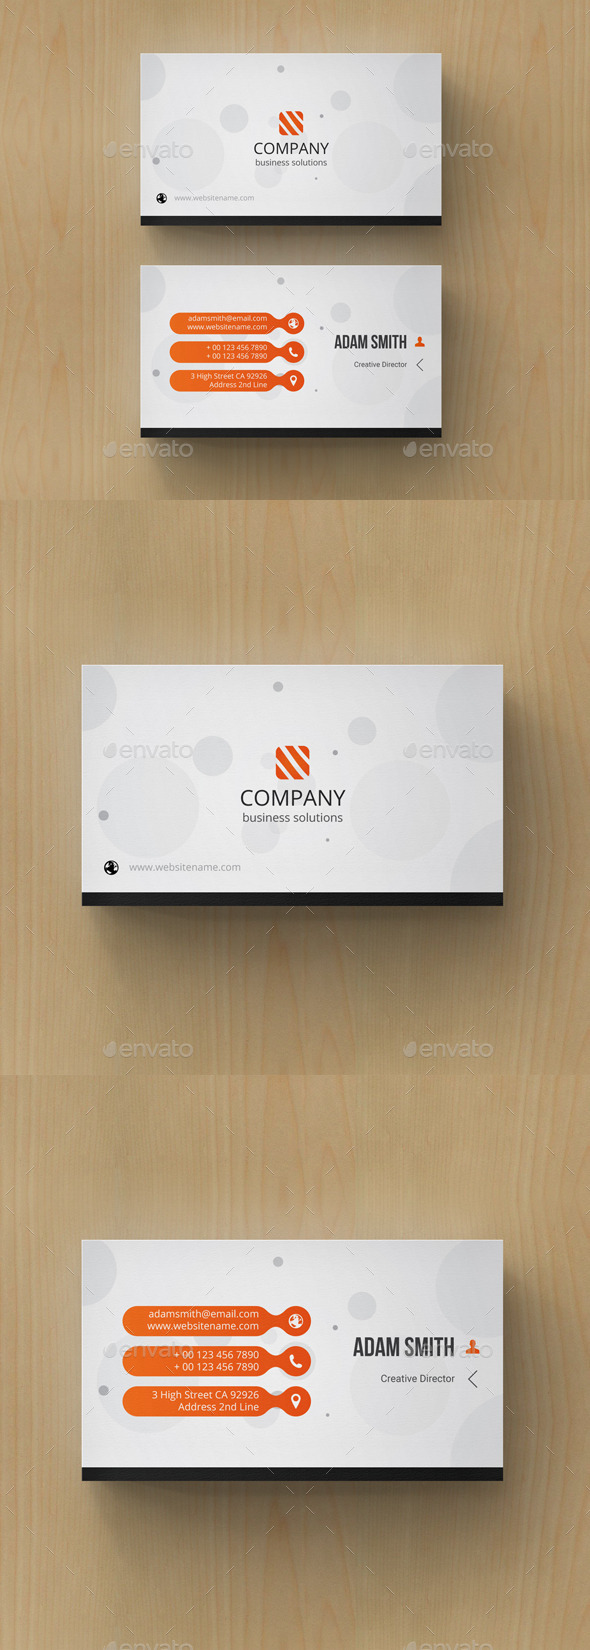 GraphicRiver Minimal Abstract Business Card 10852043